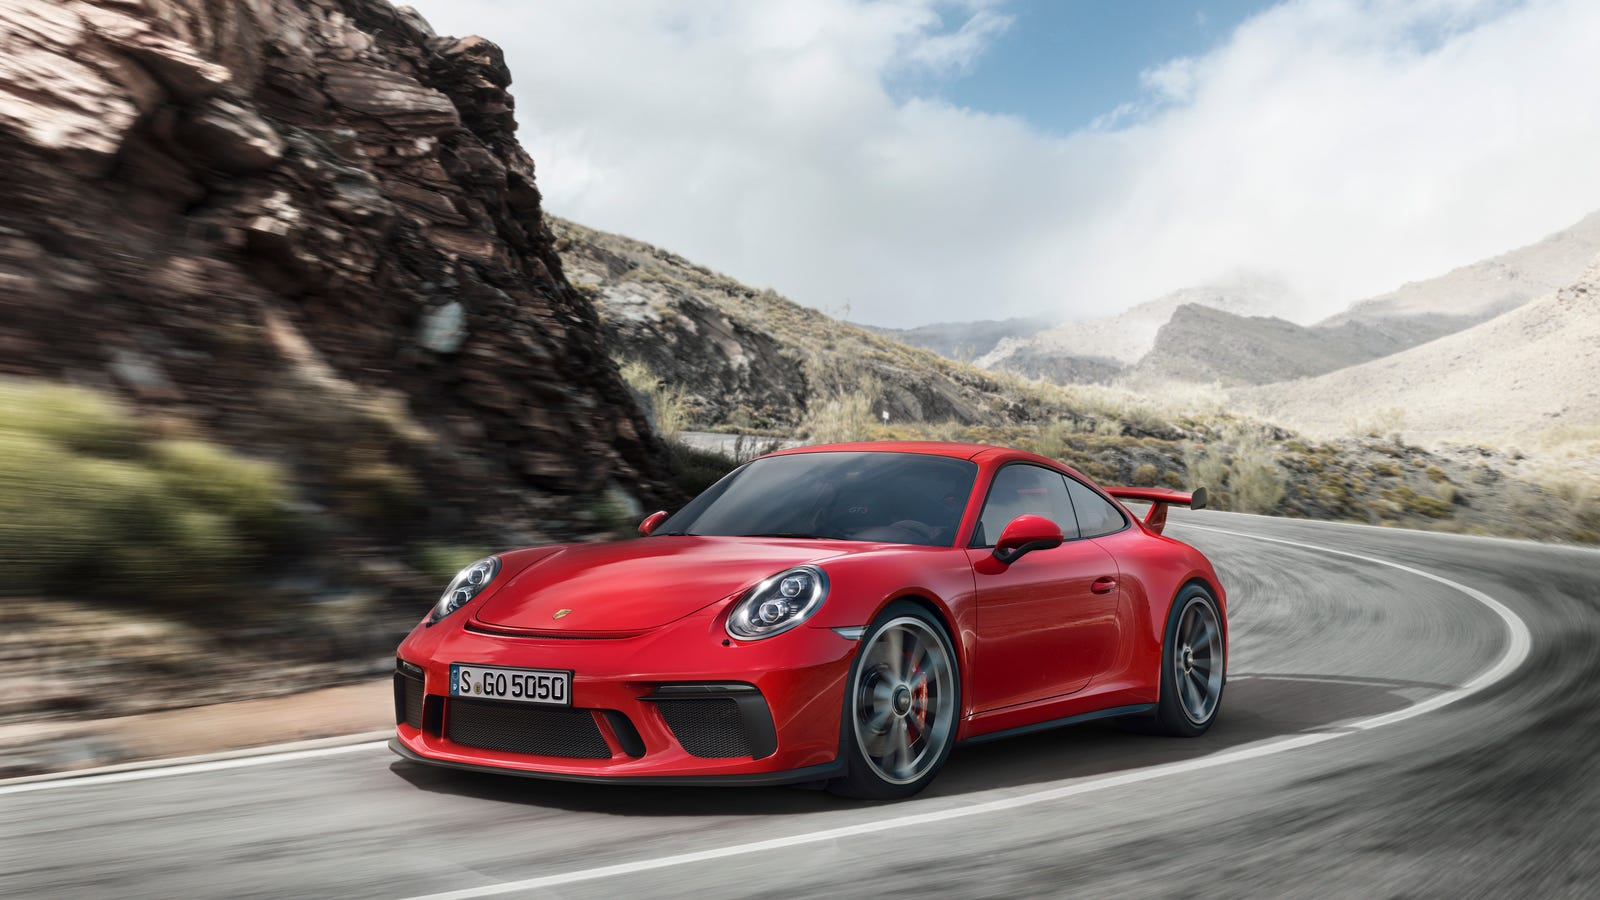 2018 porsche 911 gt3 gets manual transmission and 198 mph top speed. Black Bedroom Furniture Sets. Home Design Ideas